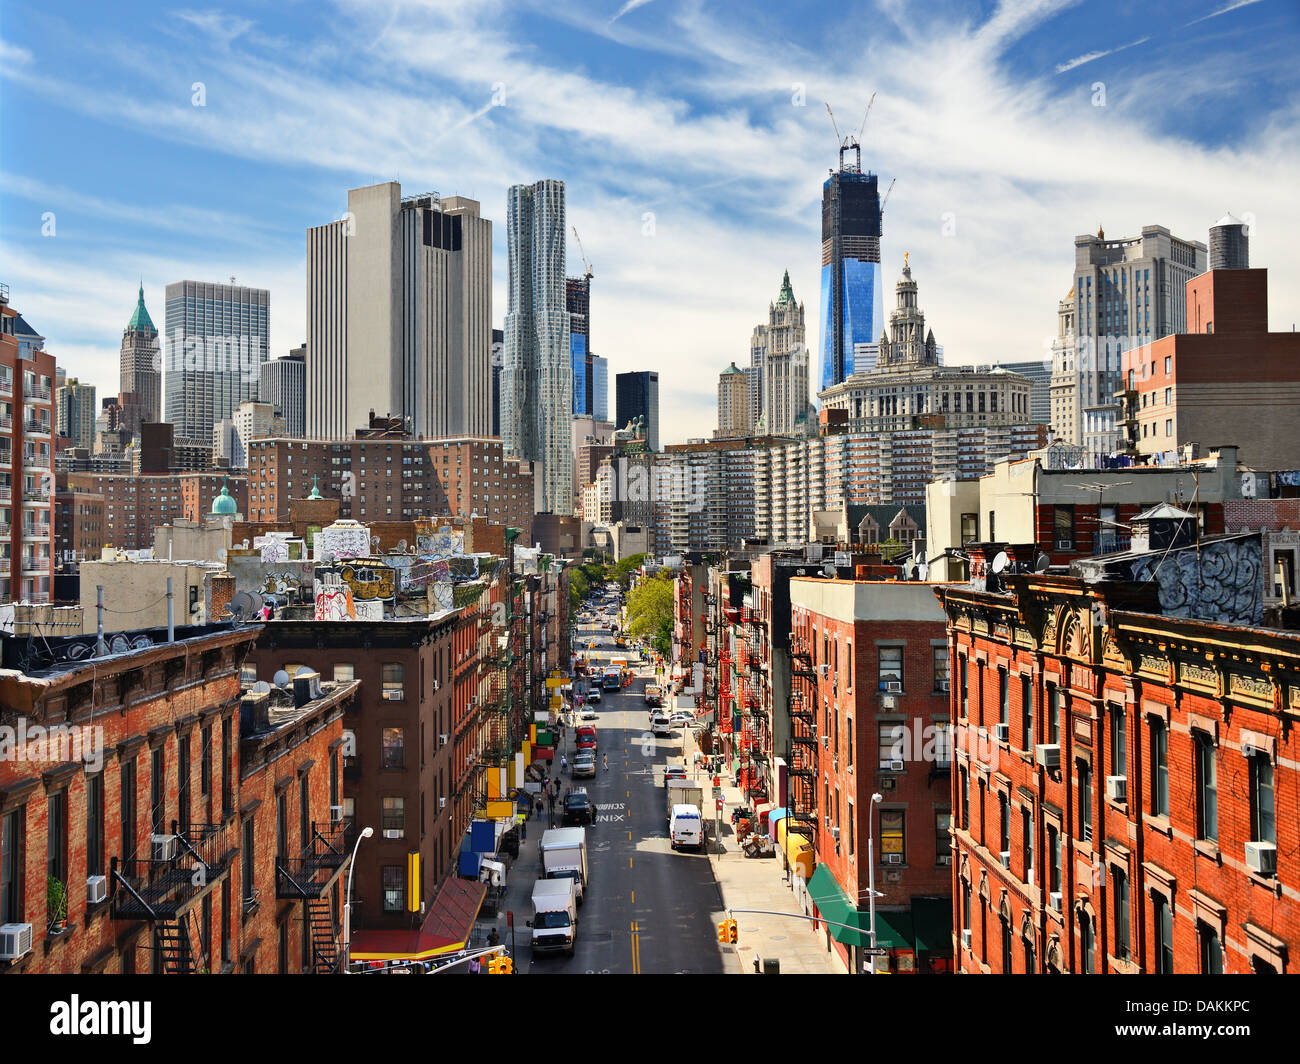 Lower East Side Manhattan Cityscape in New York City. Photo Stock